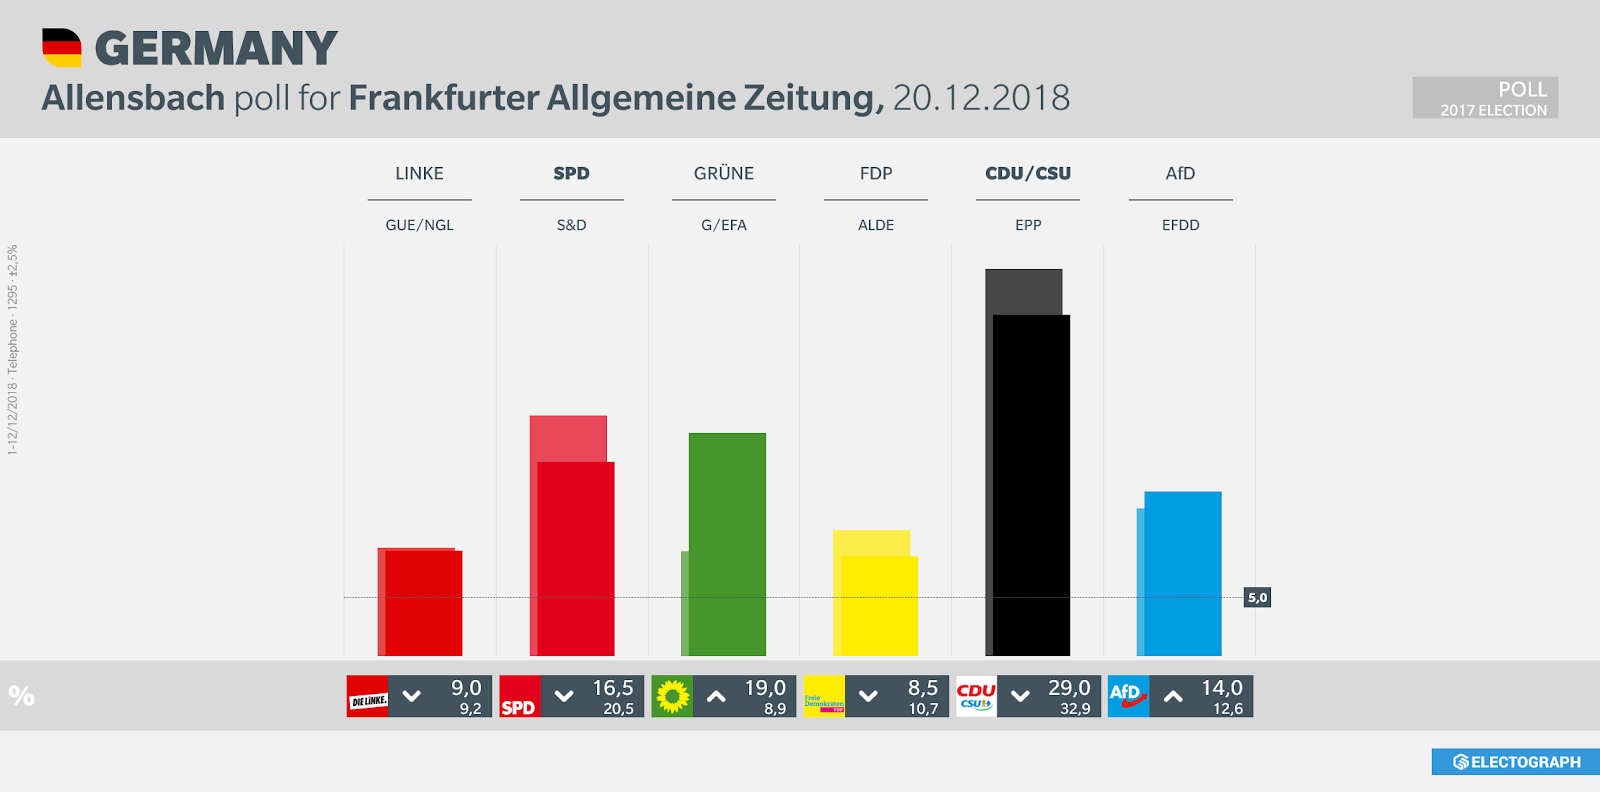 GERMANY: Allensbach poll chart for Frankfurter Allgemeine Zeitung, 20 December 2018